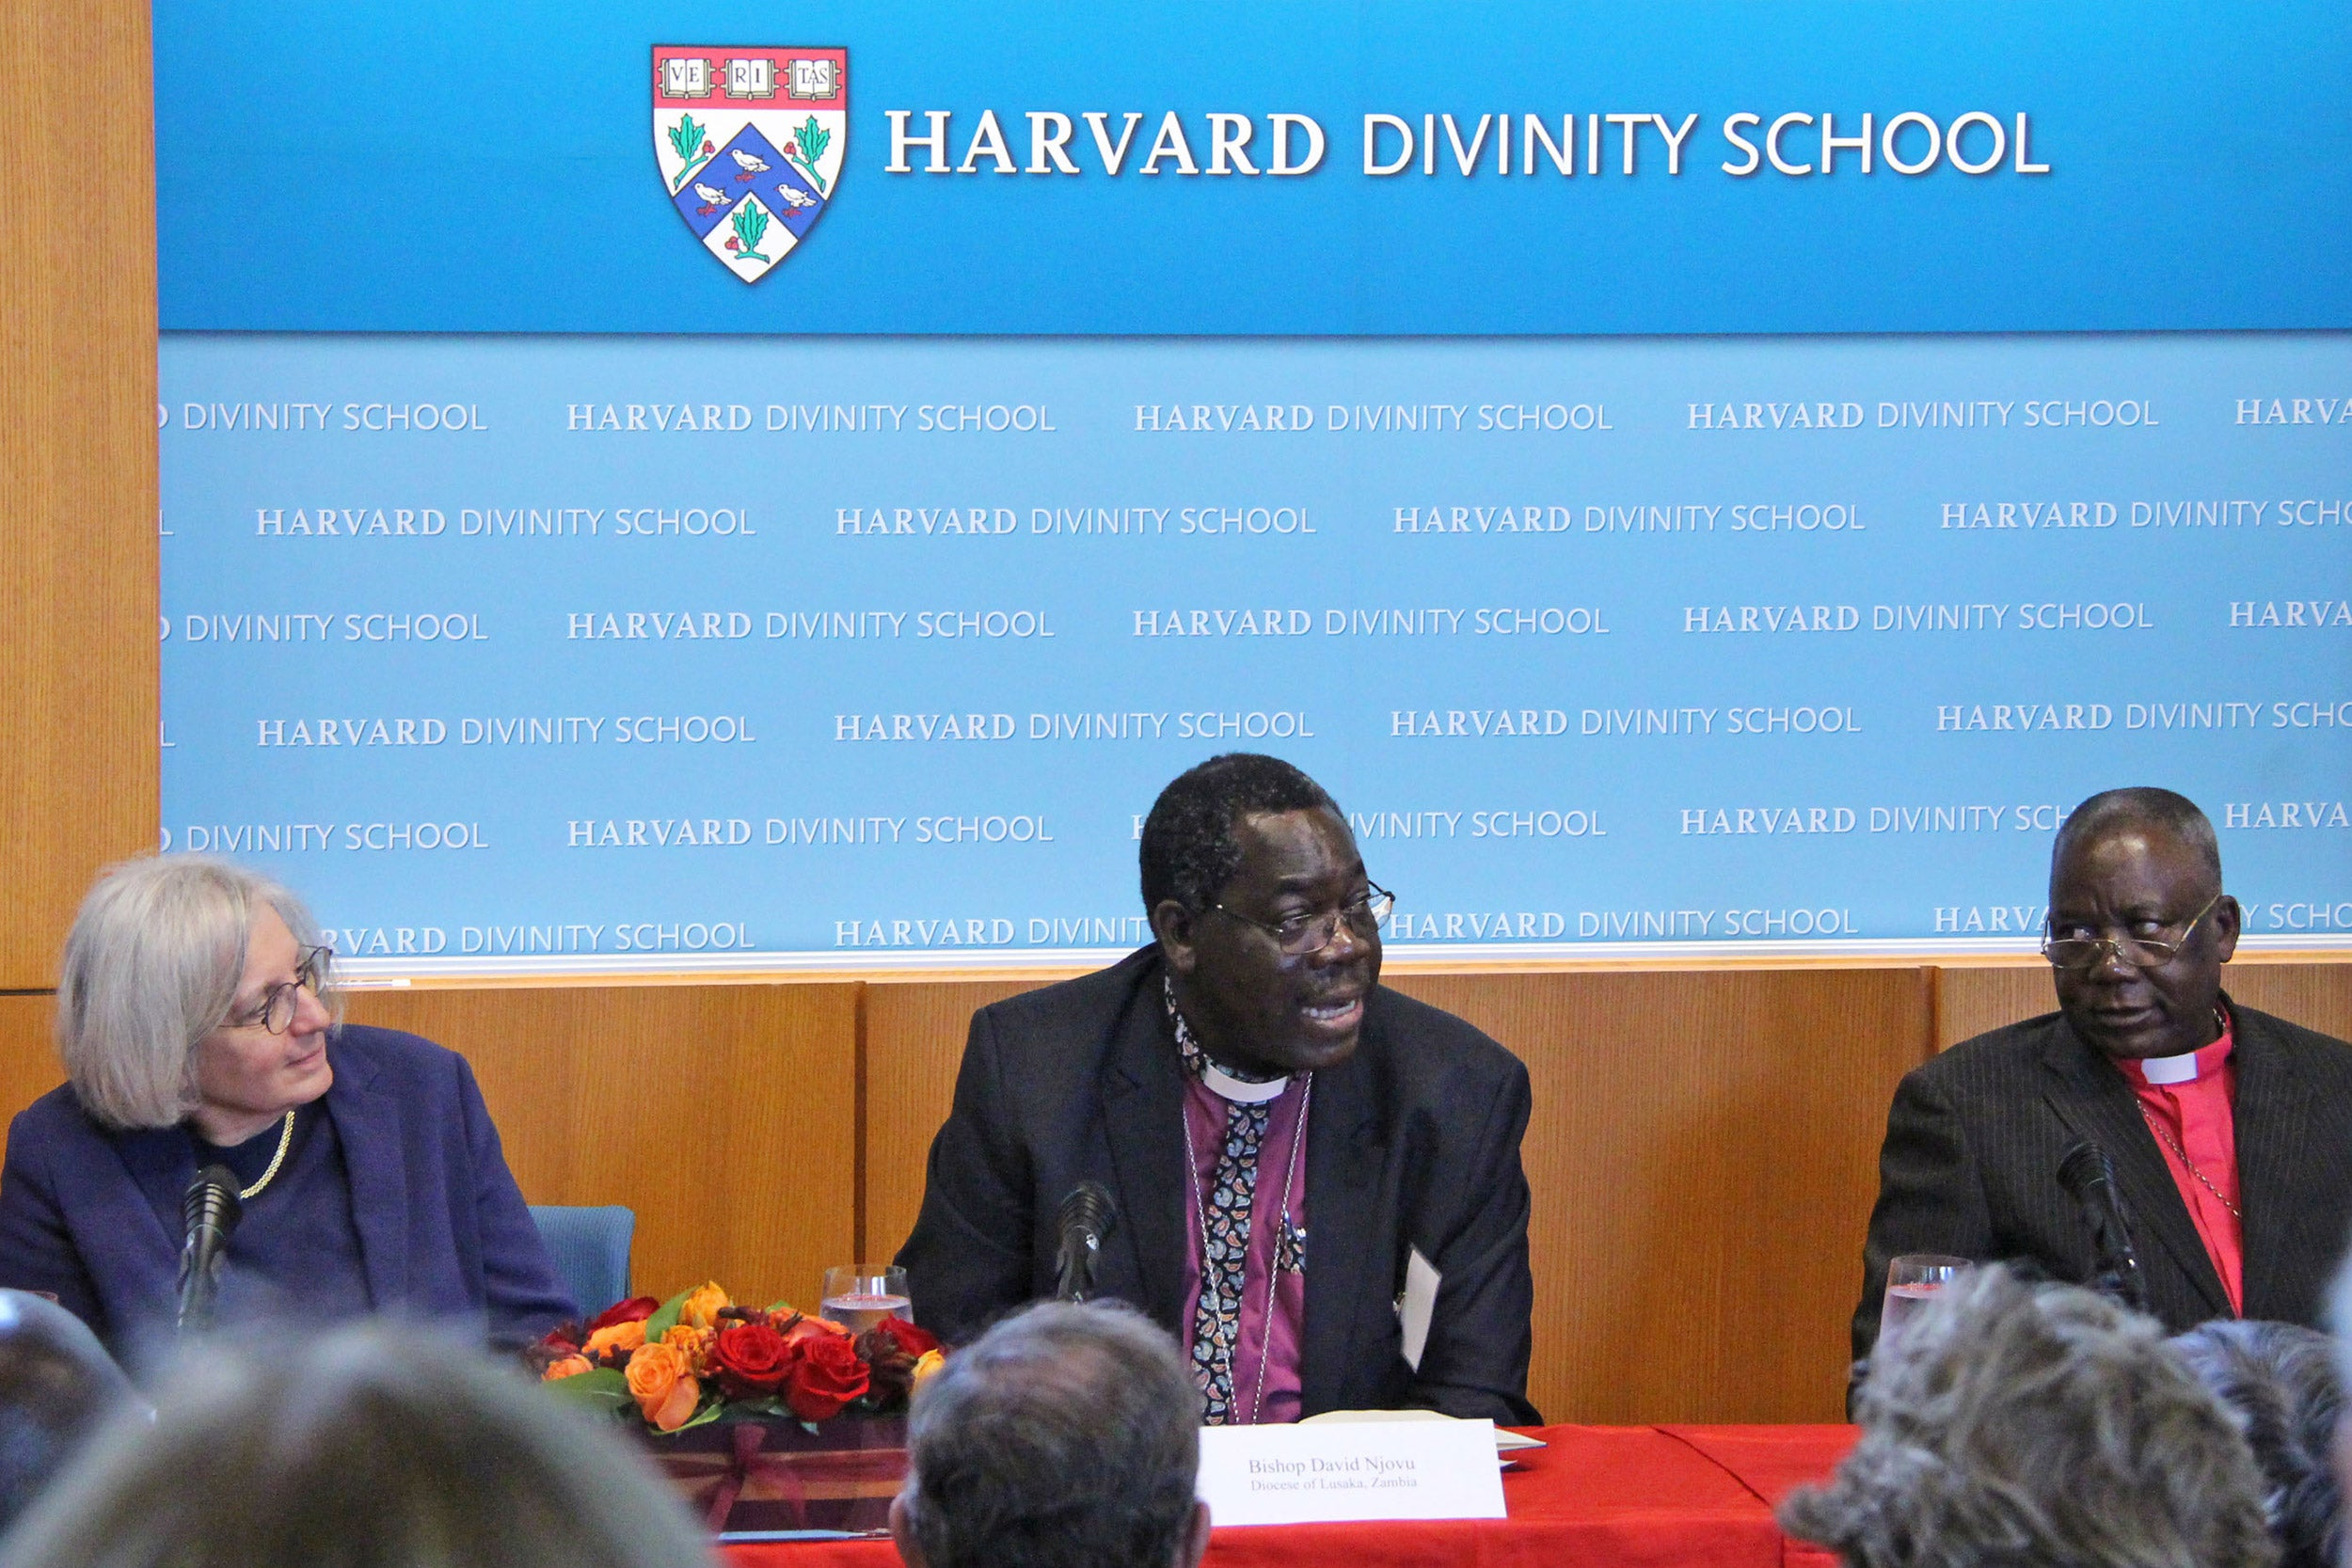 """We don't go there to condemn a traditional healer, because as soon as you do that, you create a gap,"" said Anglican Bishop David Njovu of Zambia (center) in describing his approach, which includes education and acknowledging the role of faith. Panelists Professor Dyann Wirth and Bishop André Soares are also pictured."